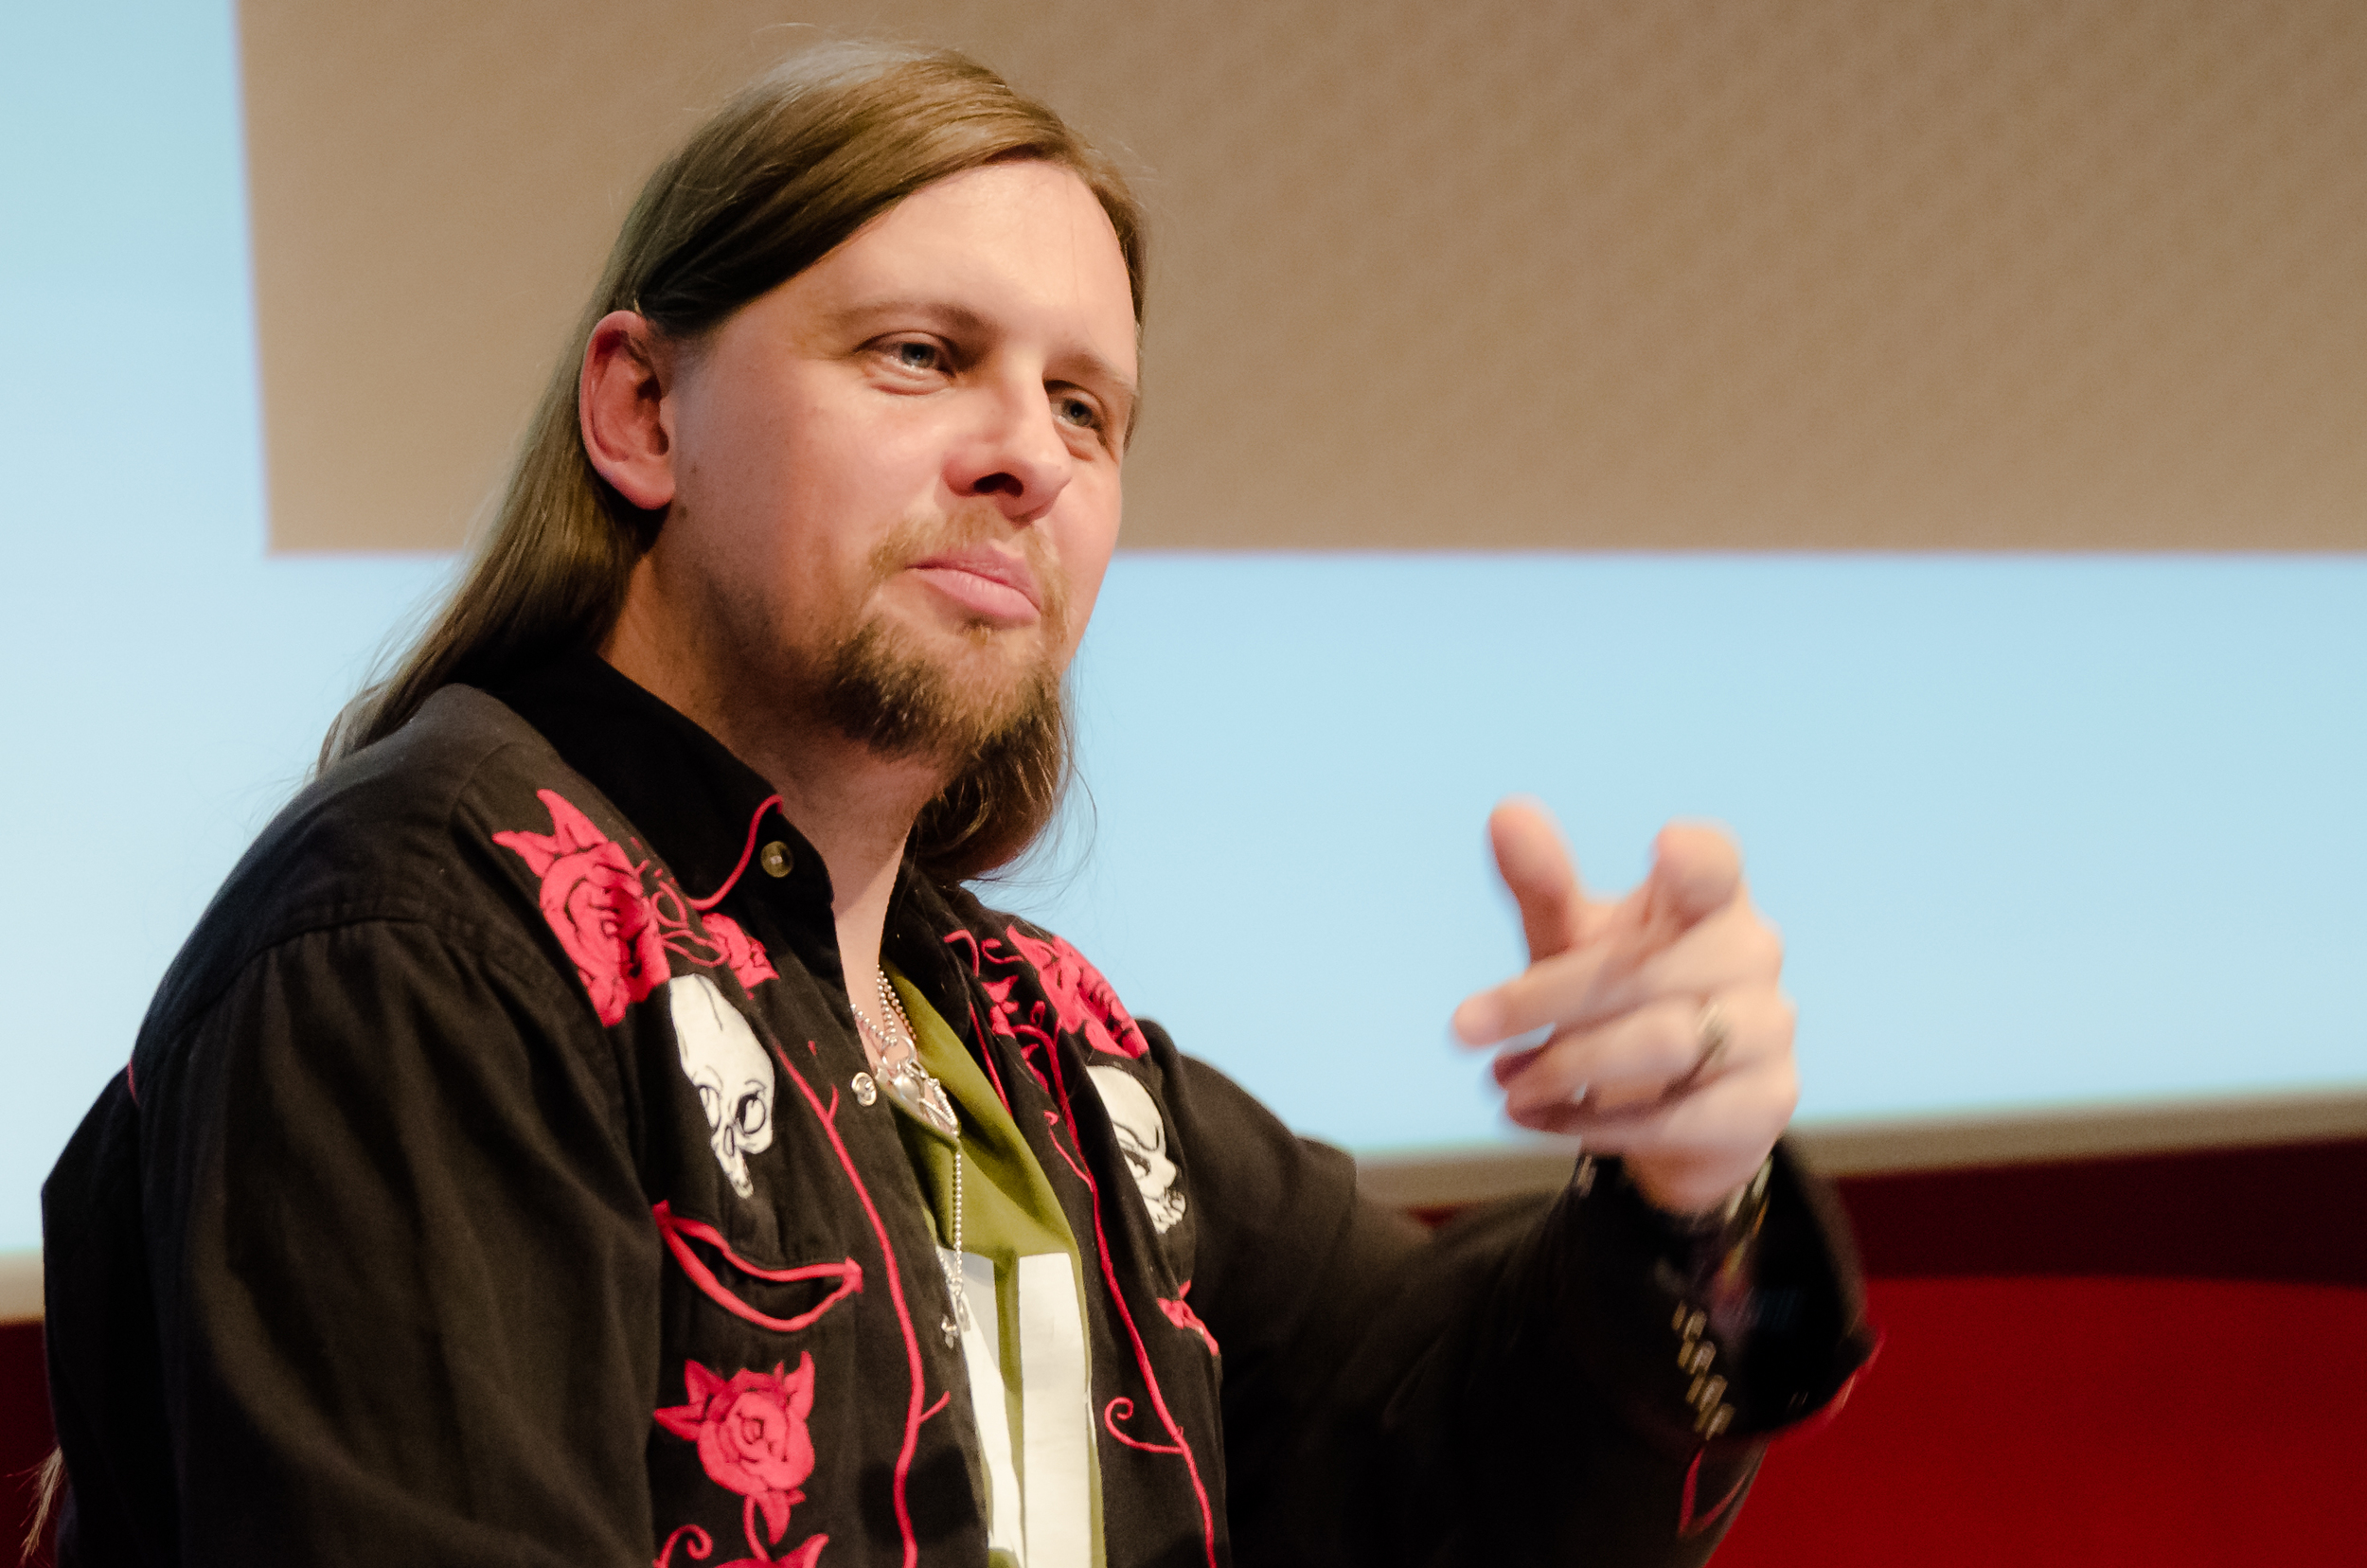 05 - AES Ceremony - Wes Maebe - Lecturer - Photo by Dirk Noy.jpg